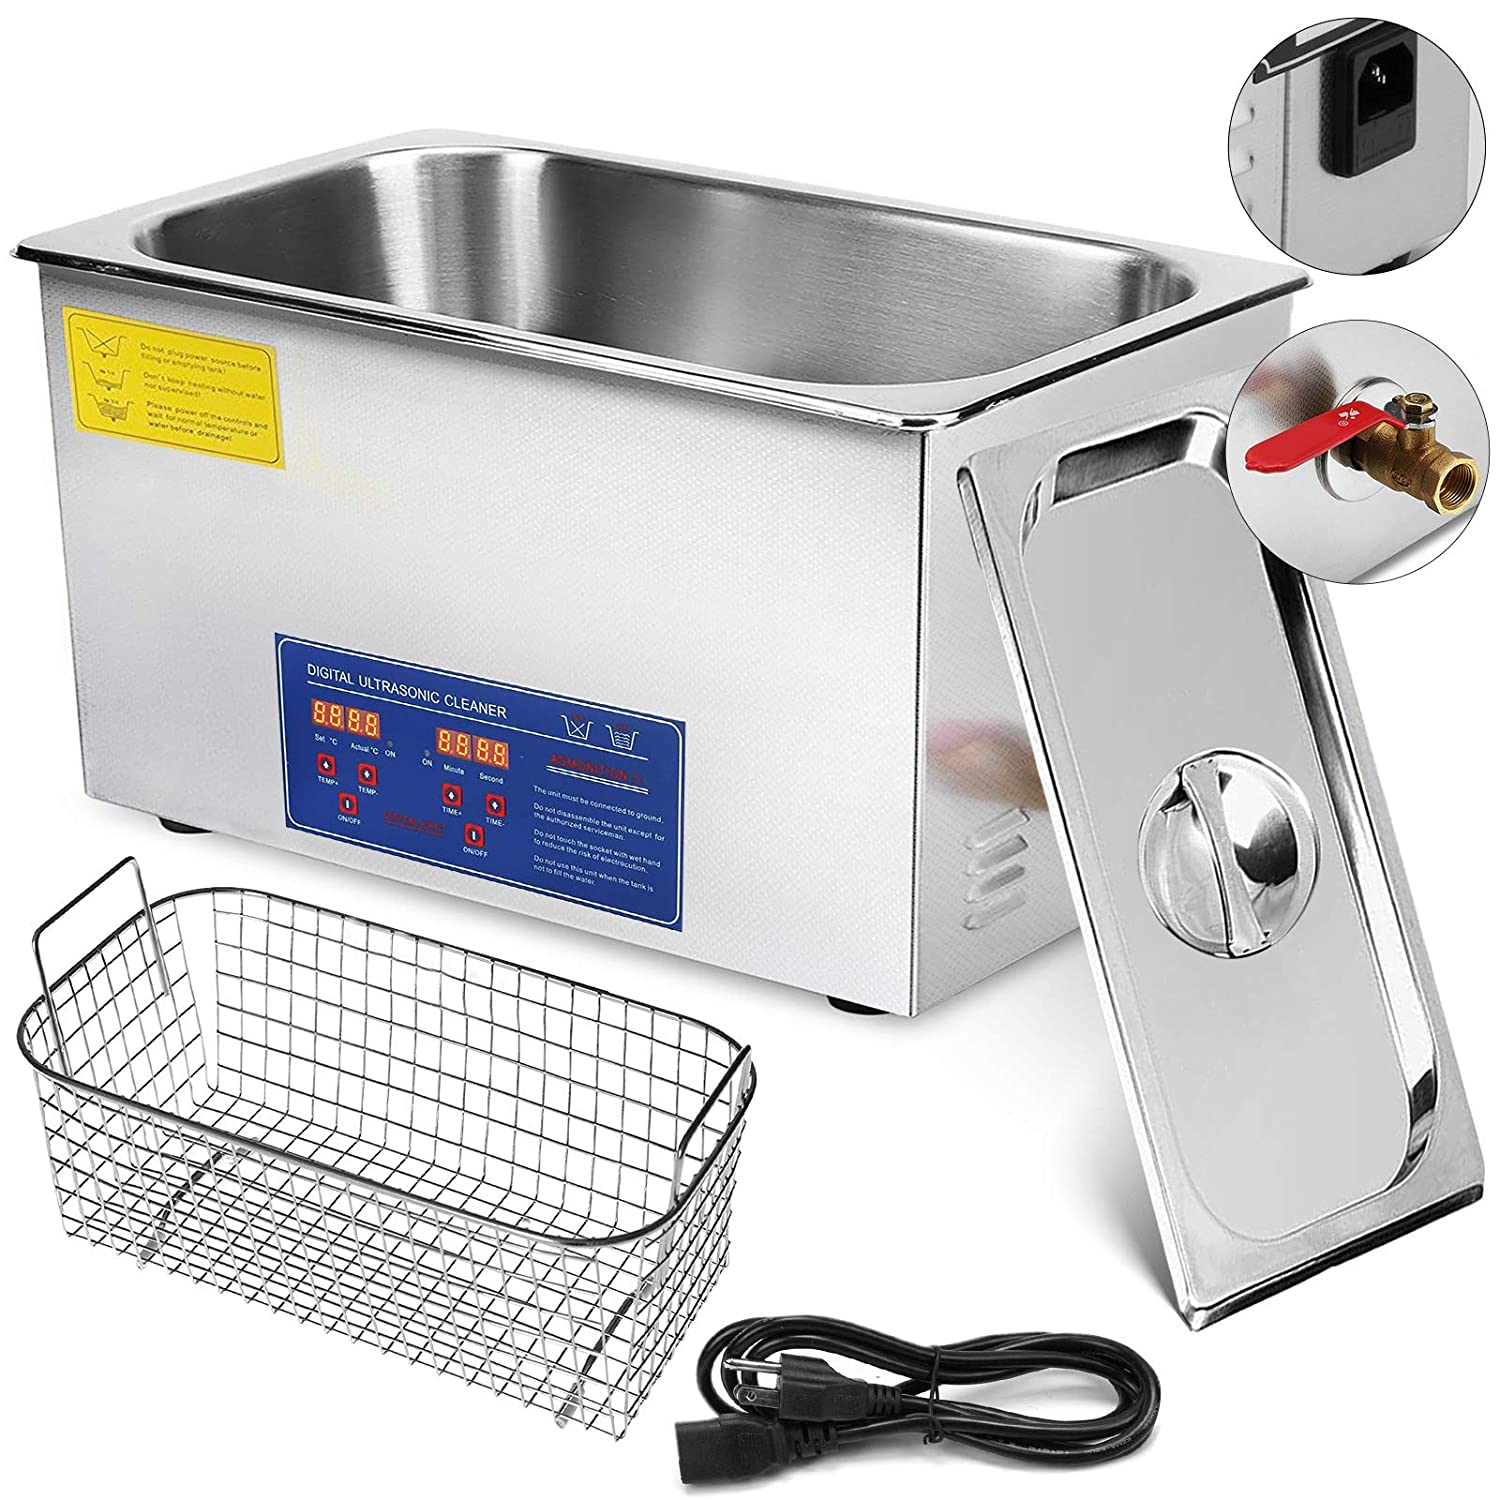 Mophorn Ultrasonic Cleaner 1 3L/2L/3L/6L/10L/22L/30L Heater Timer  Commercial Ultrasonic Cleaner Professional Stainless Steel Industrial  Ultrasonic